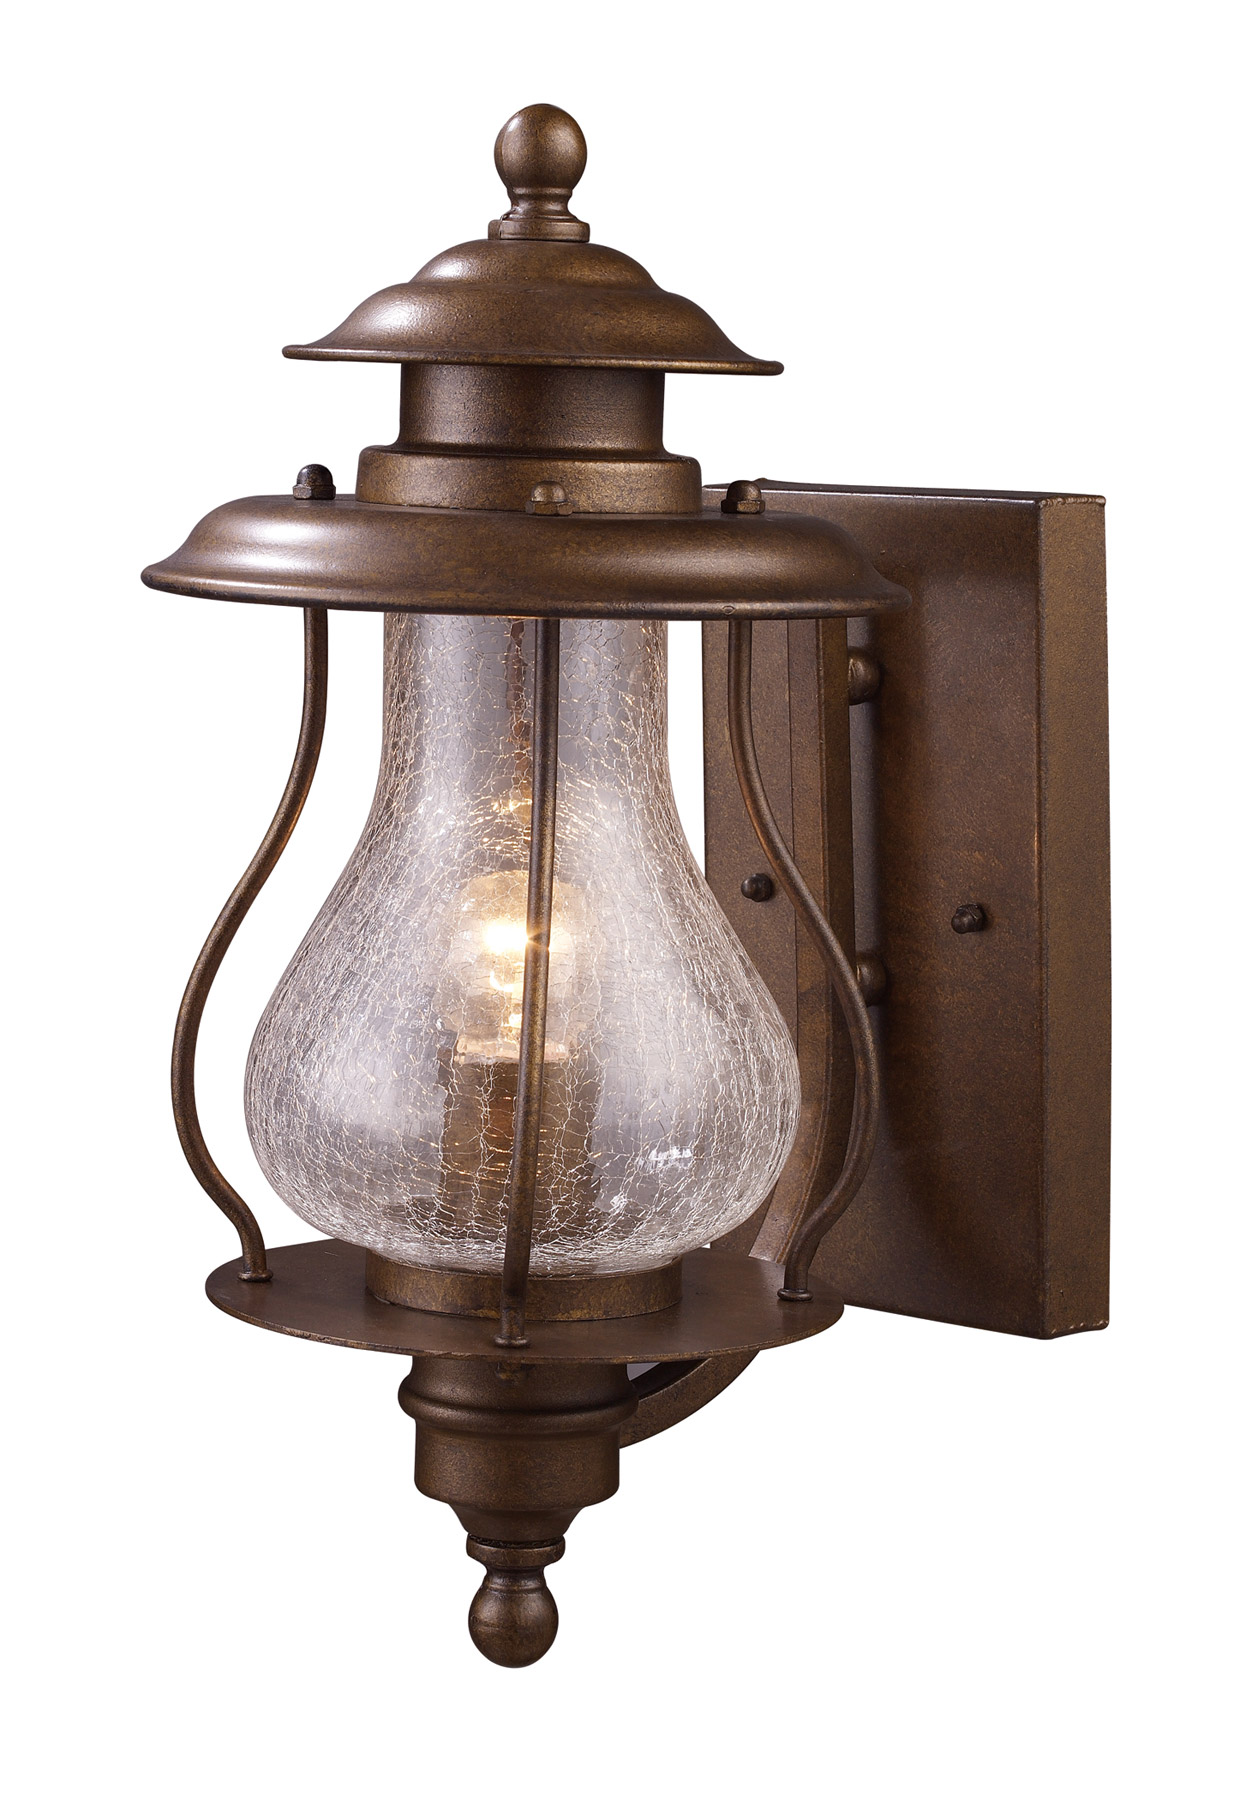 Landmark Lighting 62005-1 Wikshire Outdoor Wall Mount Lantern